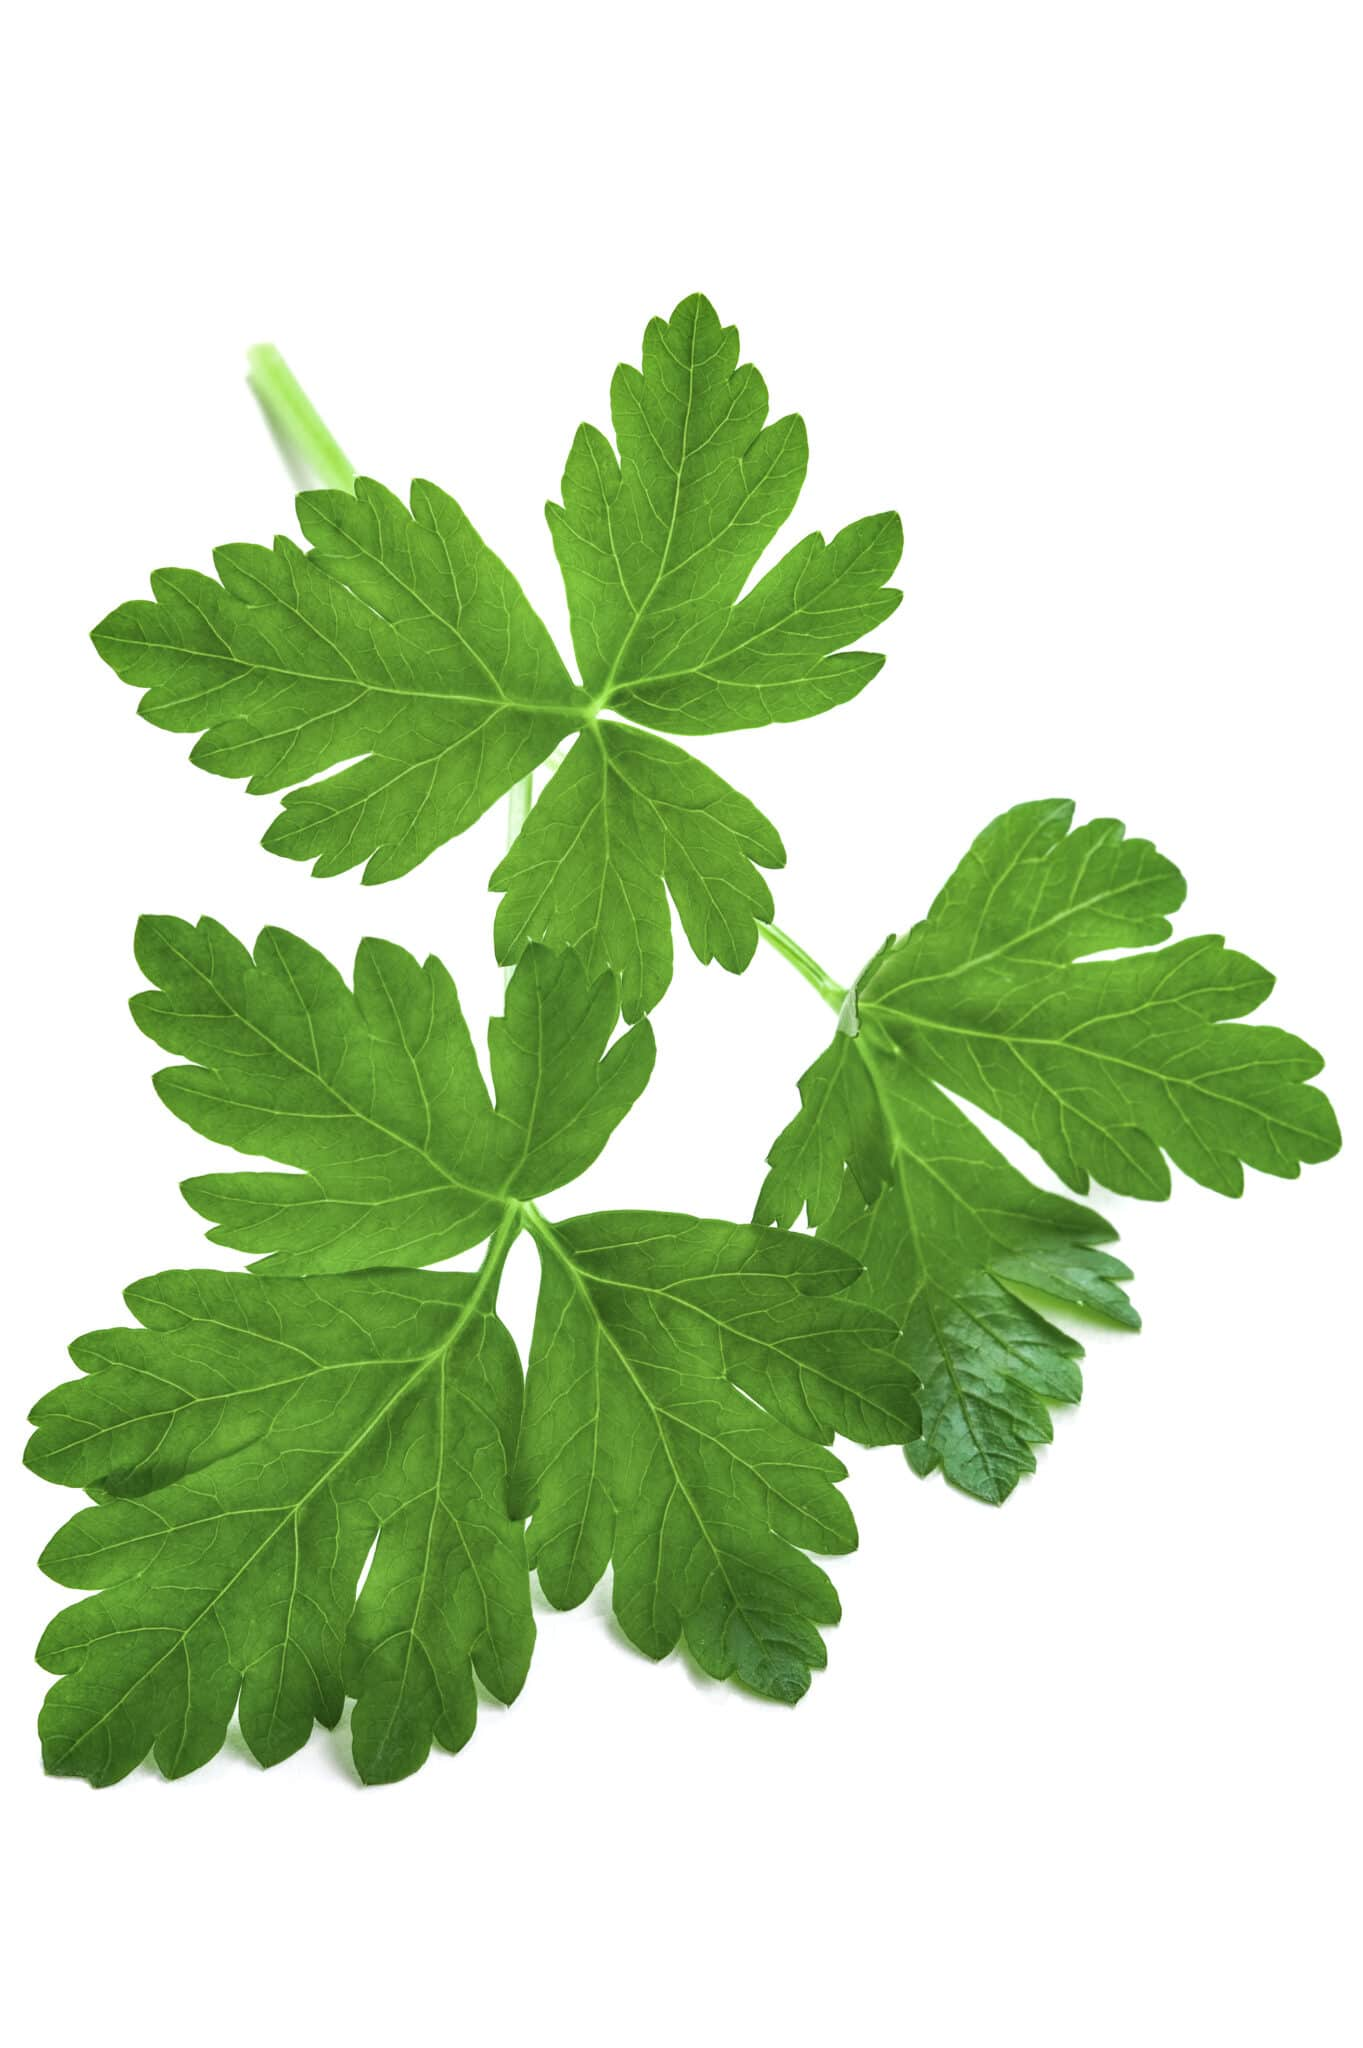 An image of a sprig of bright green freshly picked flat leafed parsley.